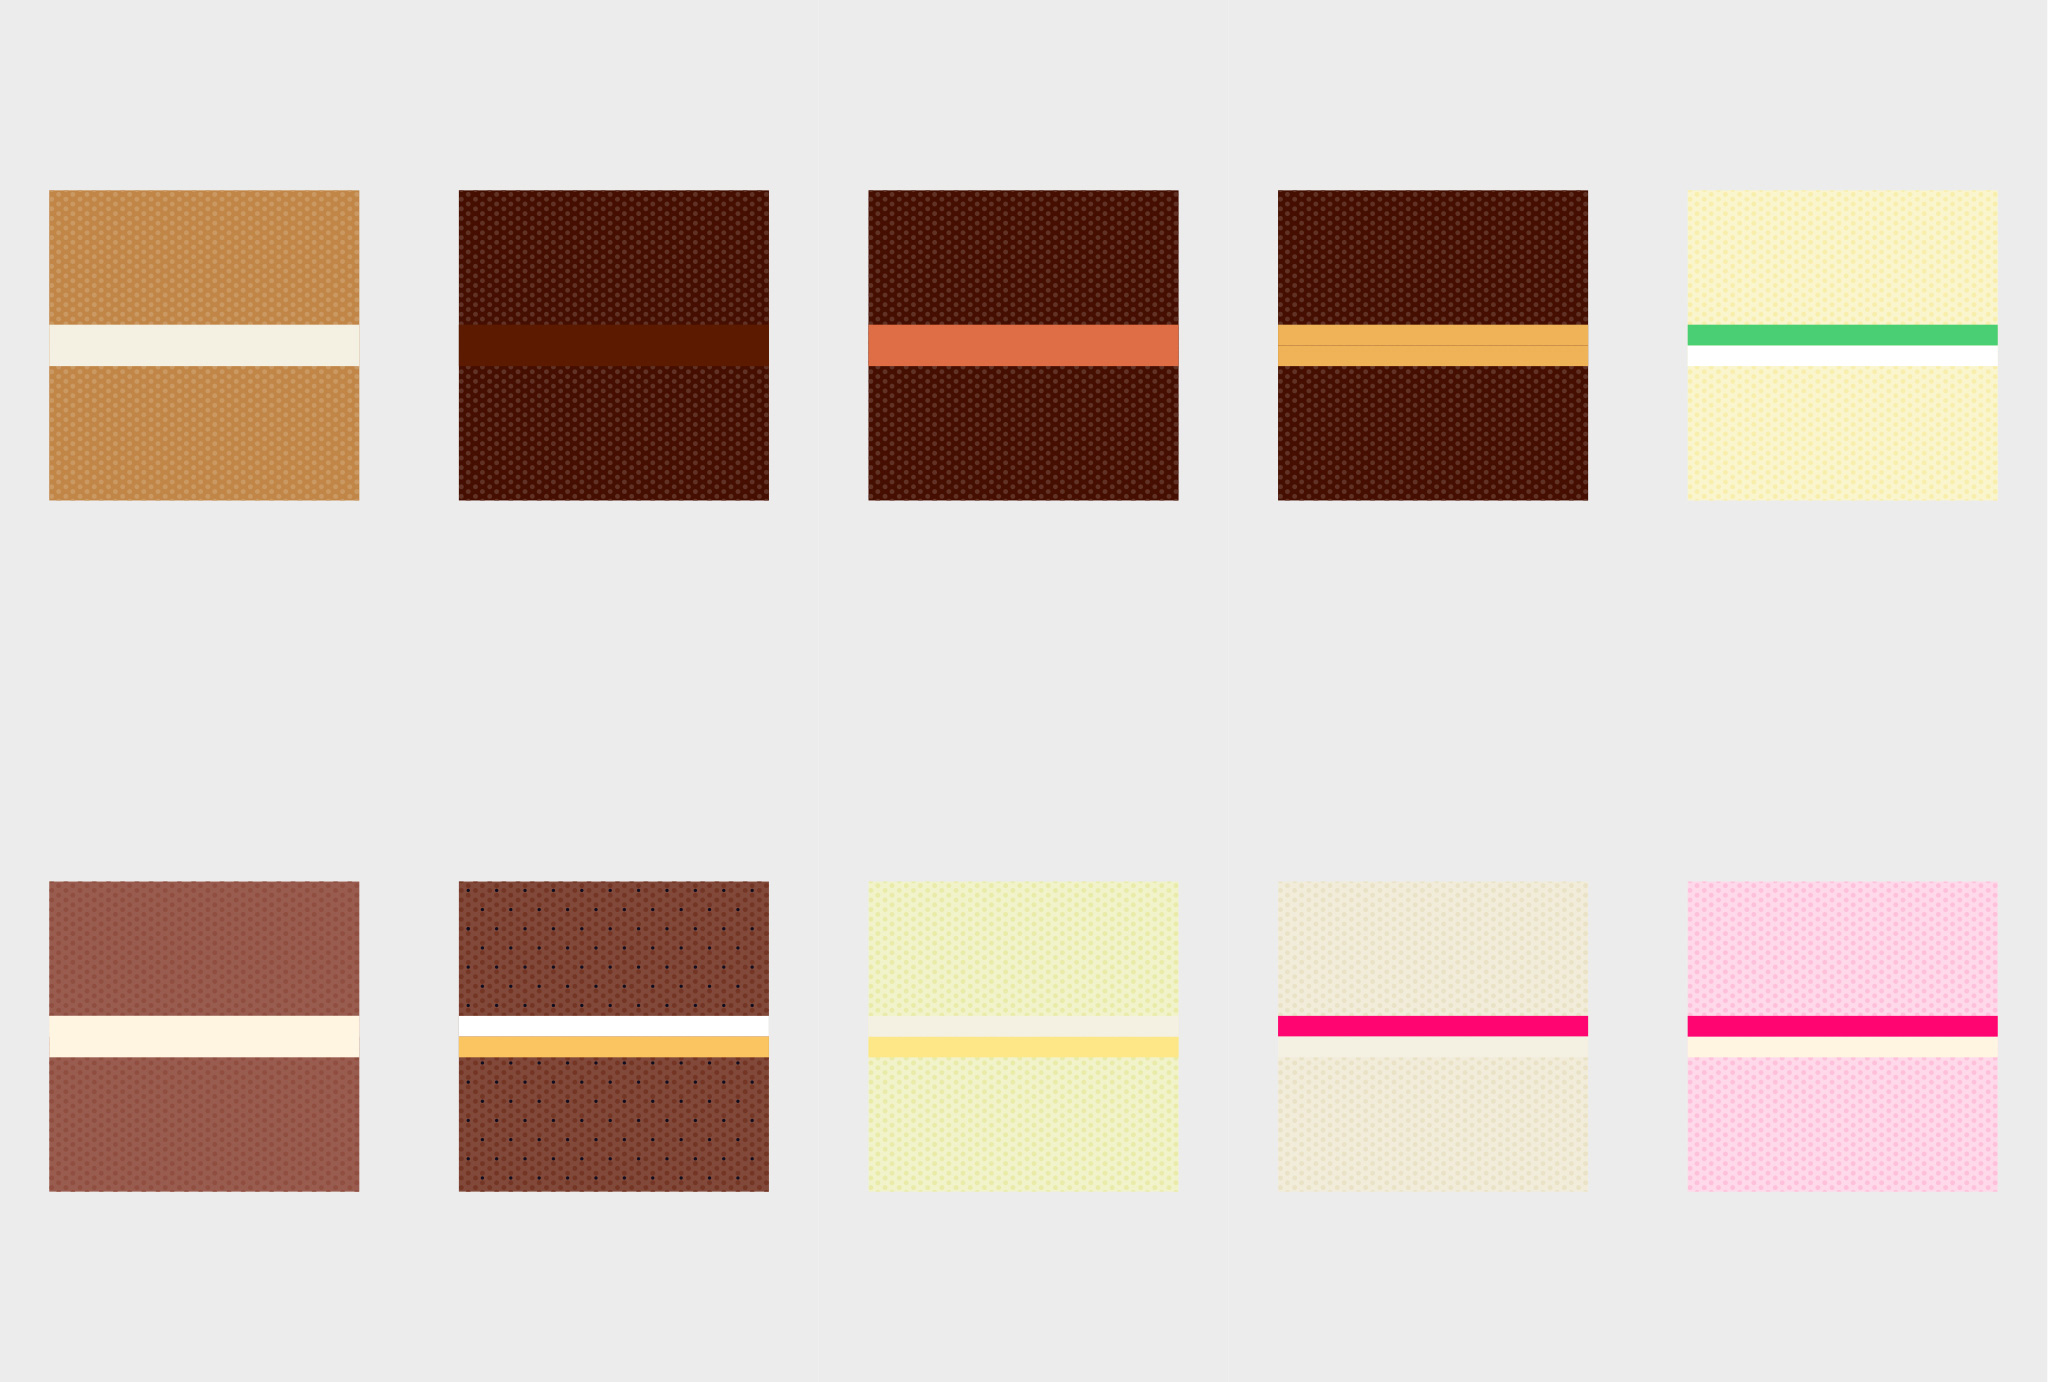 illustration of different cake flavours